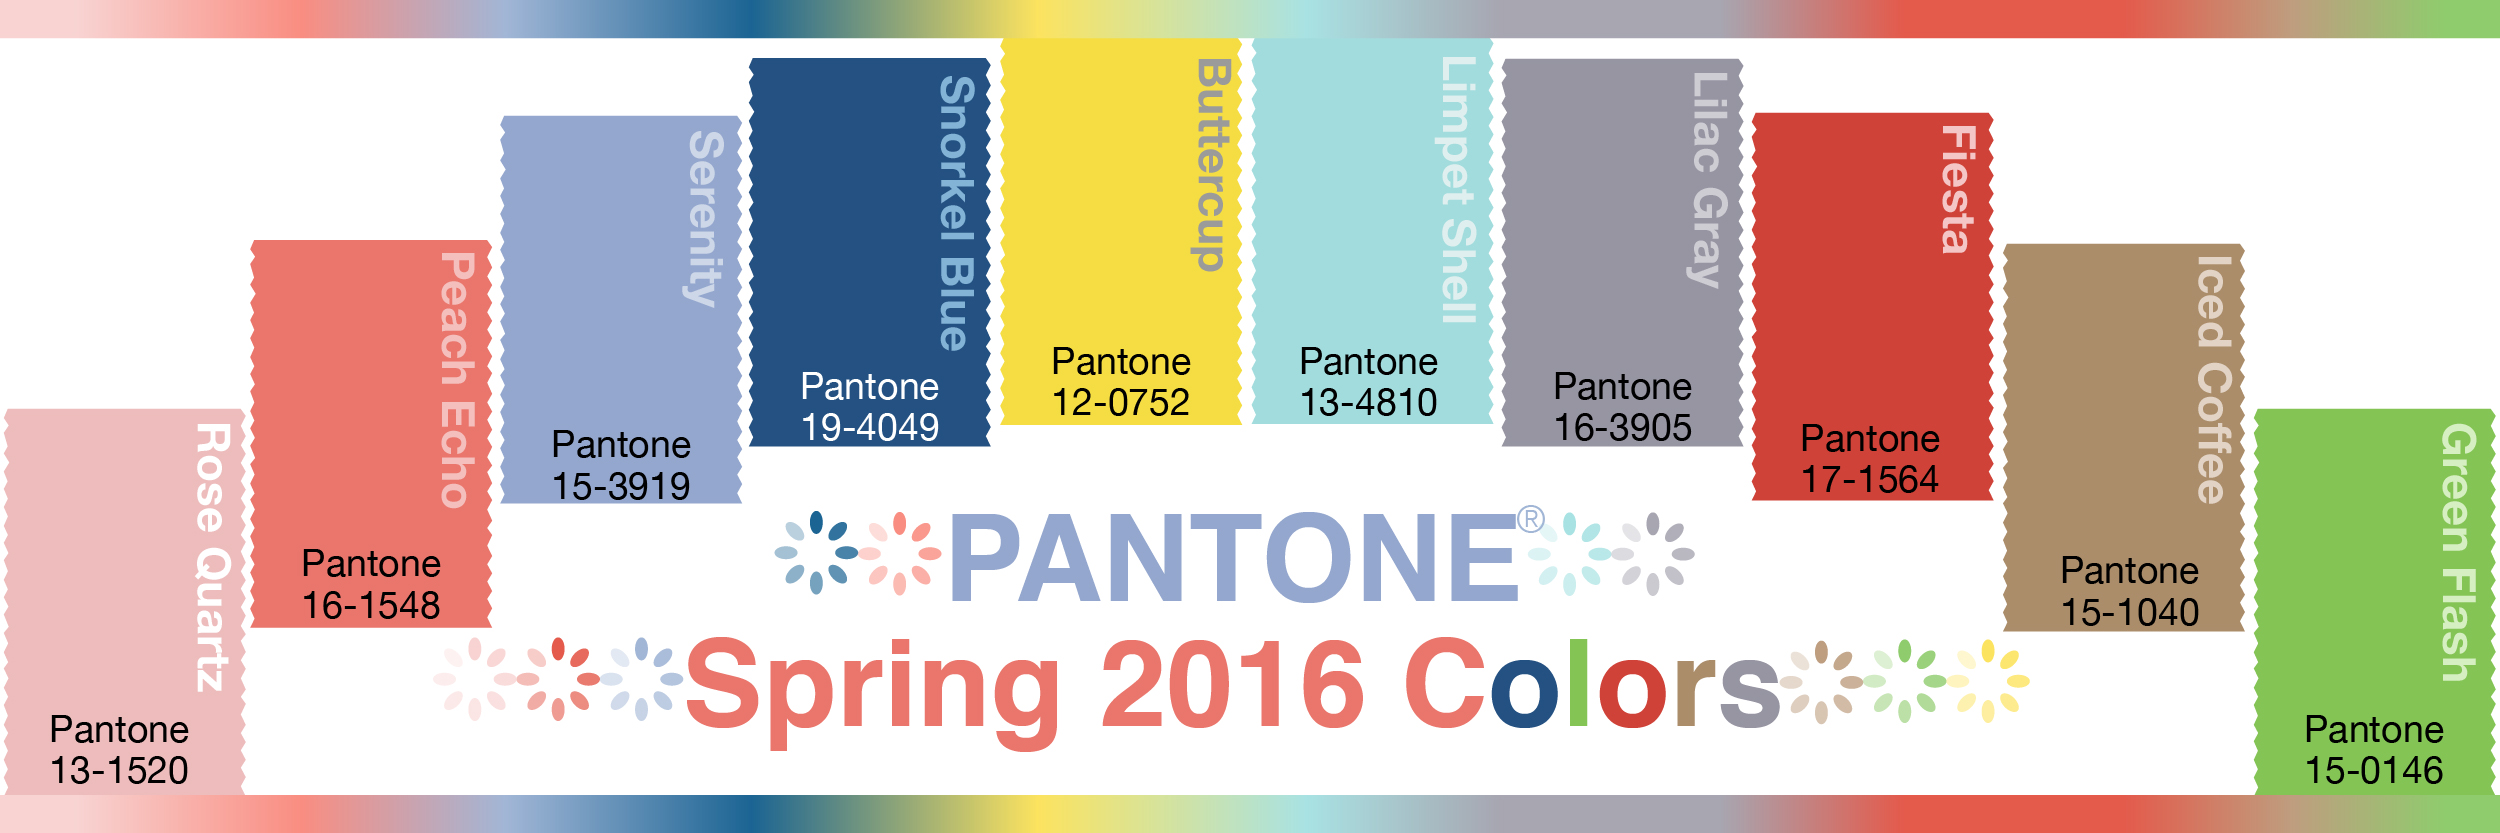 pantone spring 2016 colors - Home Decor Color Palettes